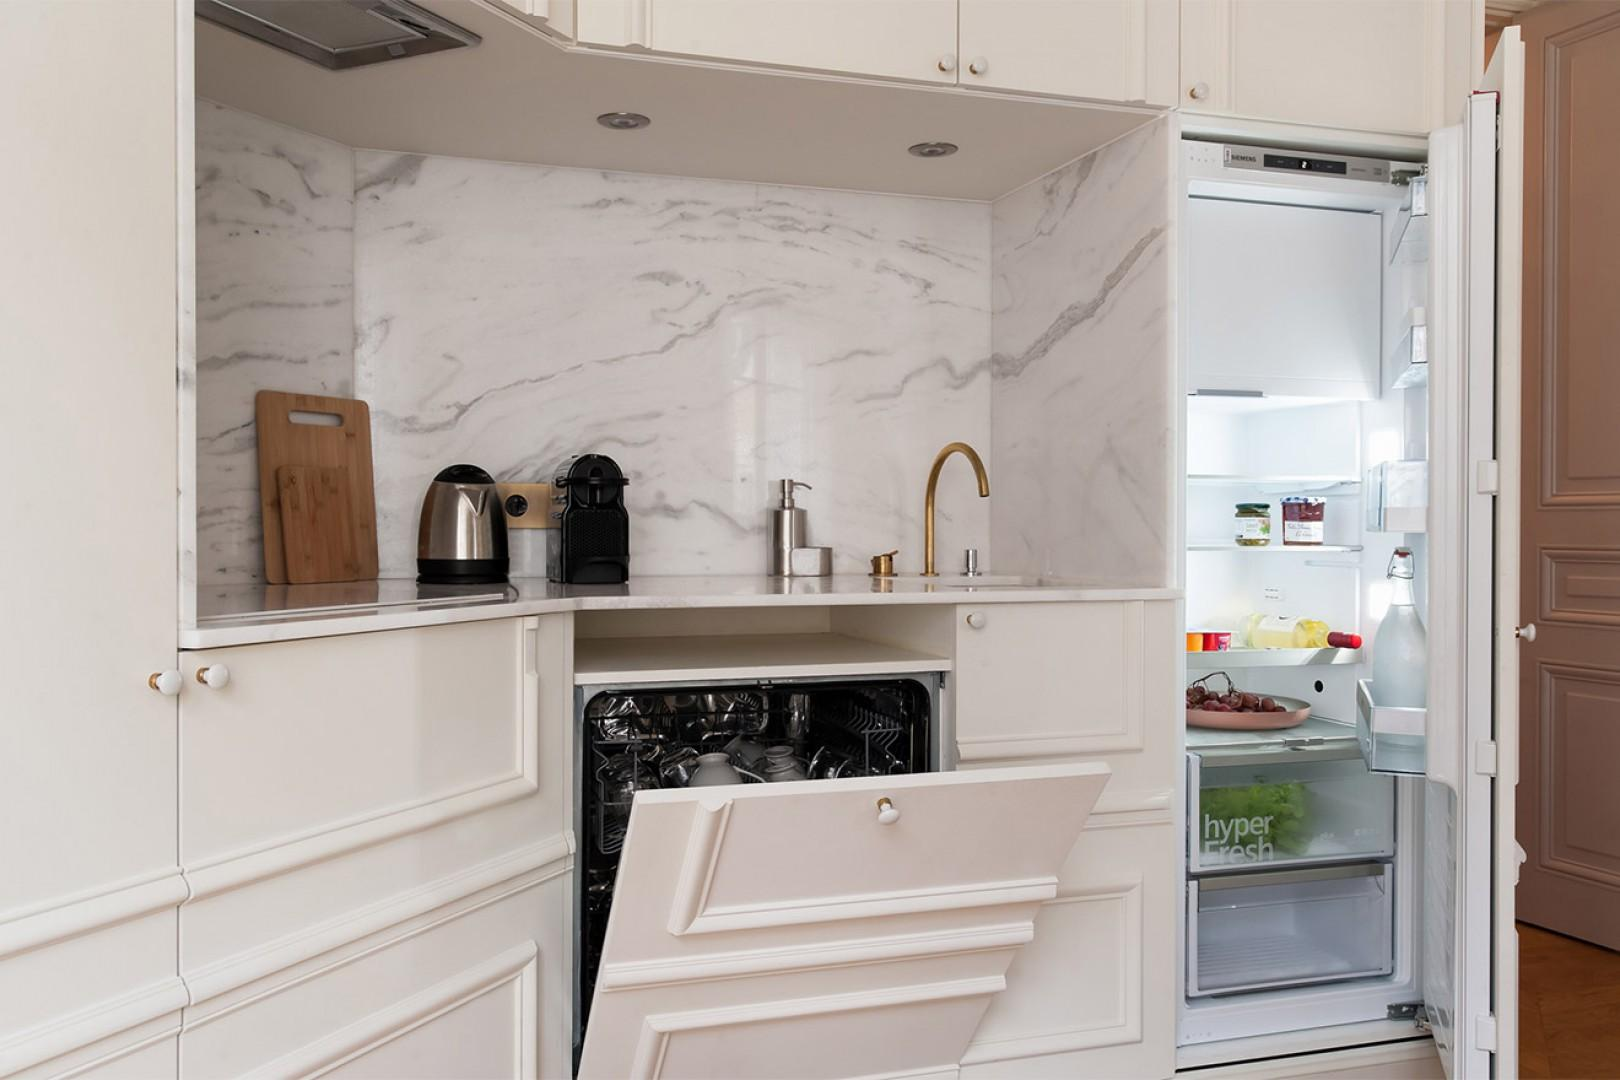 The kitchen comes with all the appliances you need for a comfortable stay.